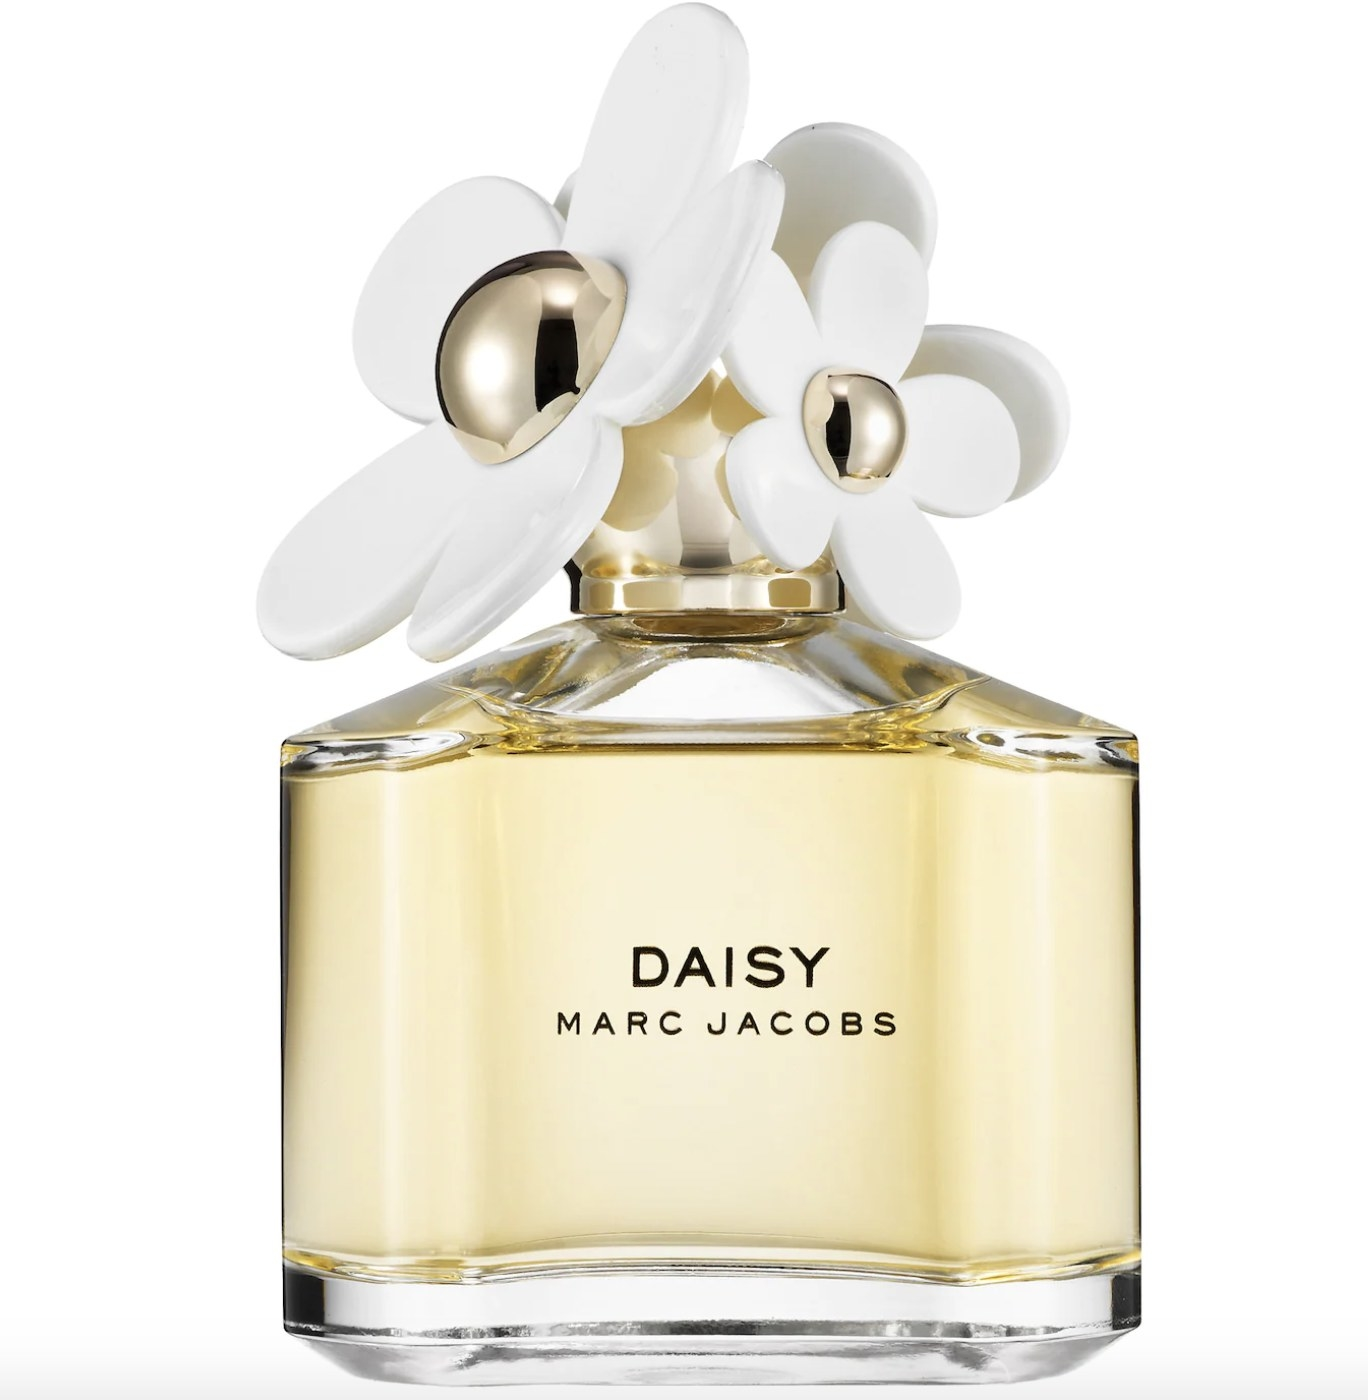 the Daisy fragrance with flower details on the cap